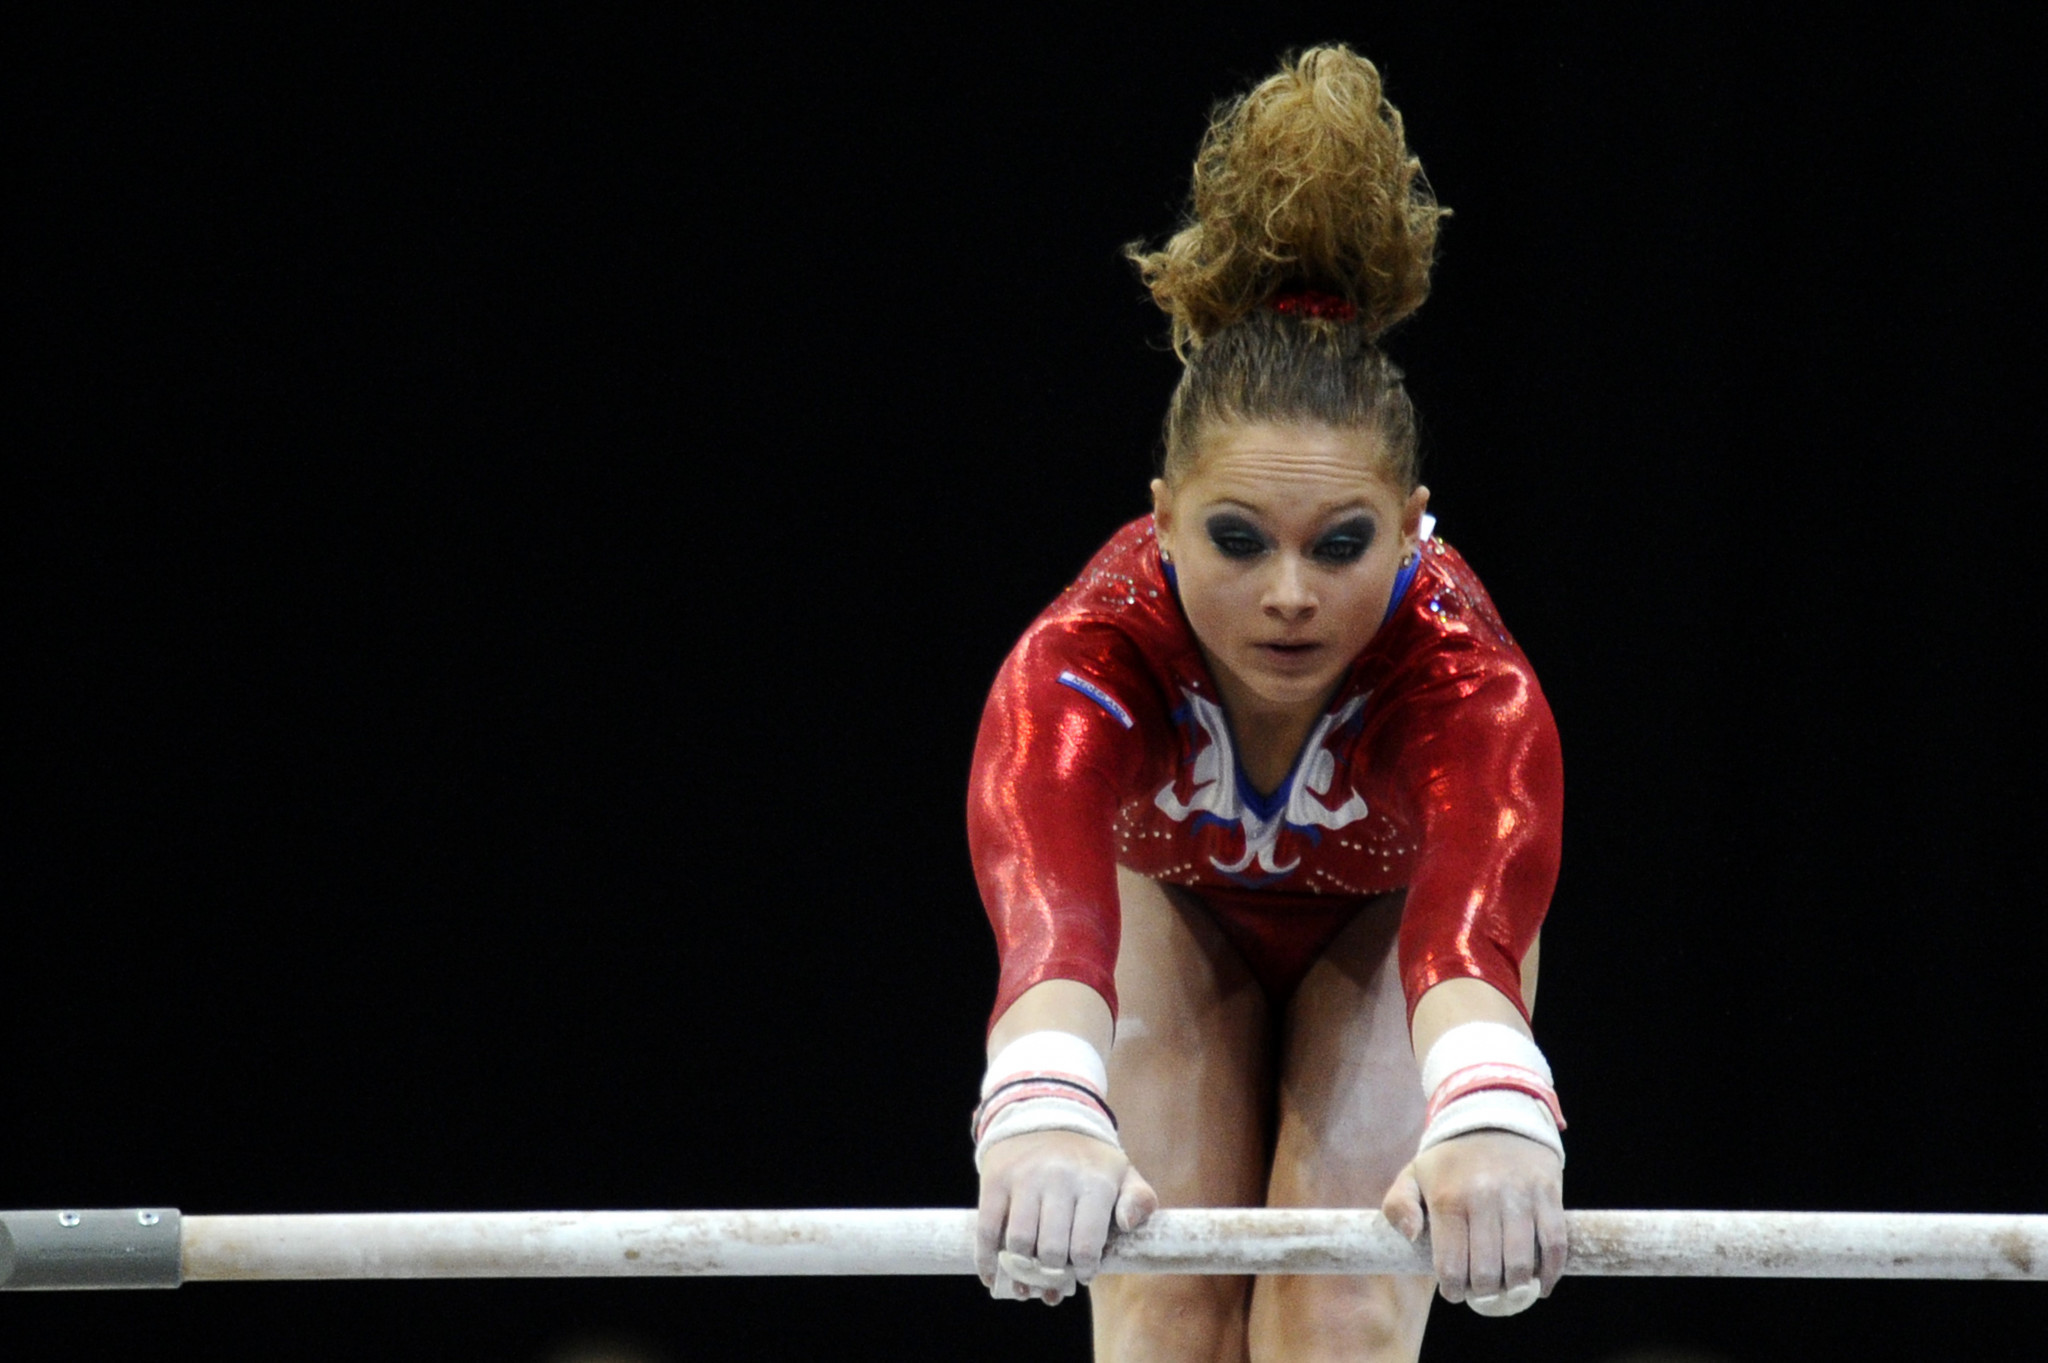 Joy Goedkoop is the latest gymnast to reveal experiences of abuse ©Getty Images